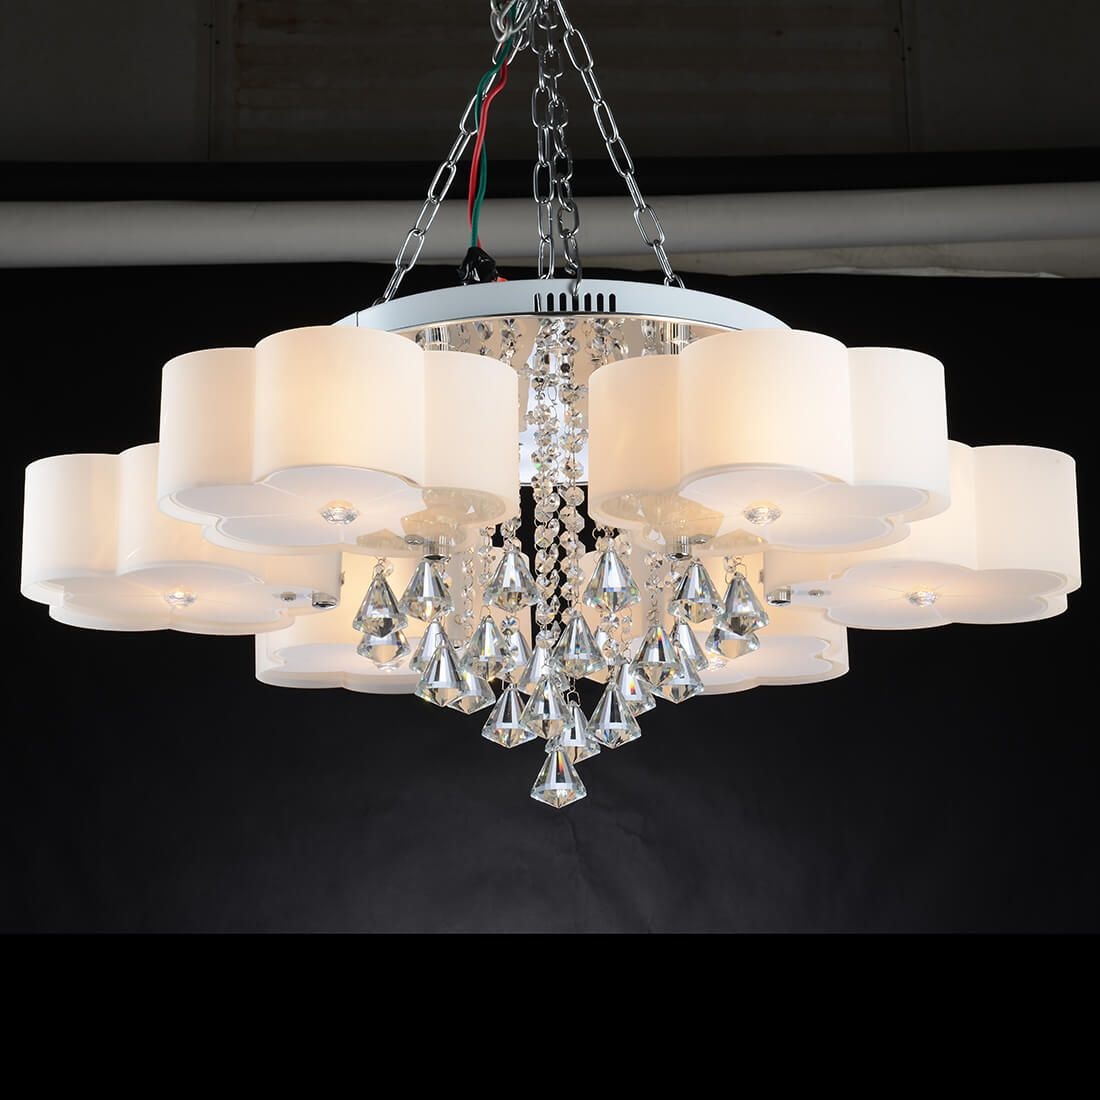 house-modern-ceiling-light